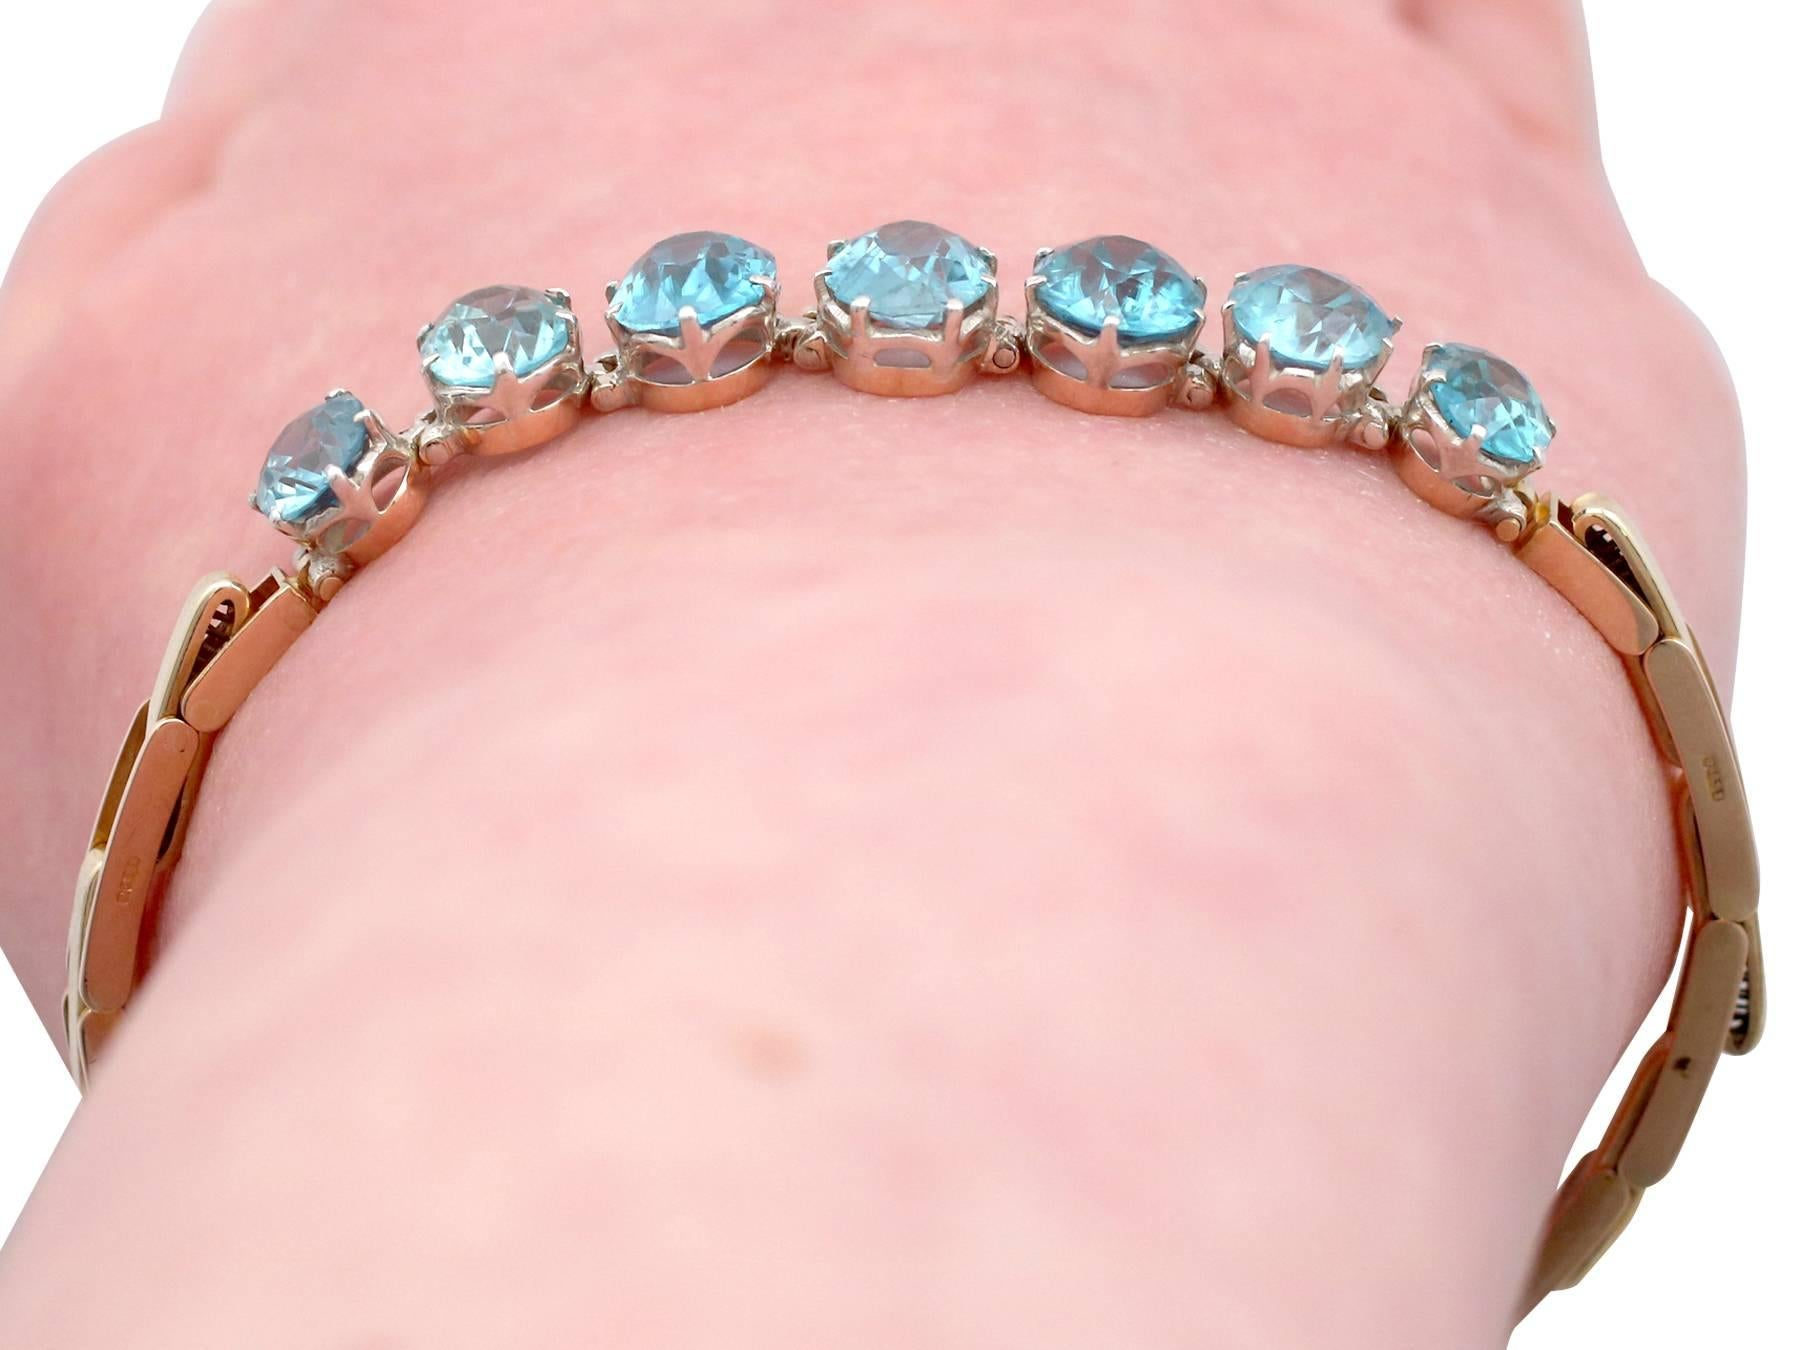 chain plated romantic gold opk zircon new design white women item platinum charm blue from bracelet banquet shining jewelry s bracelets in color hand